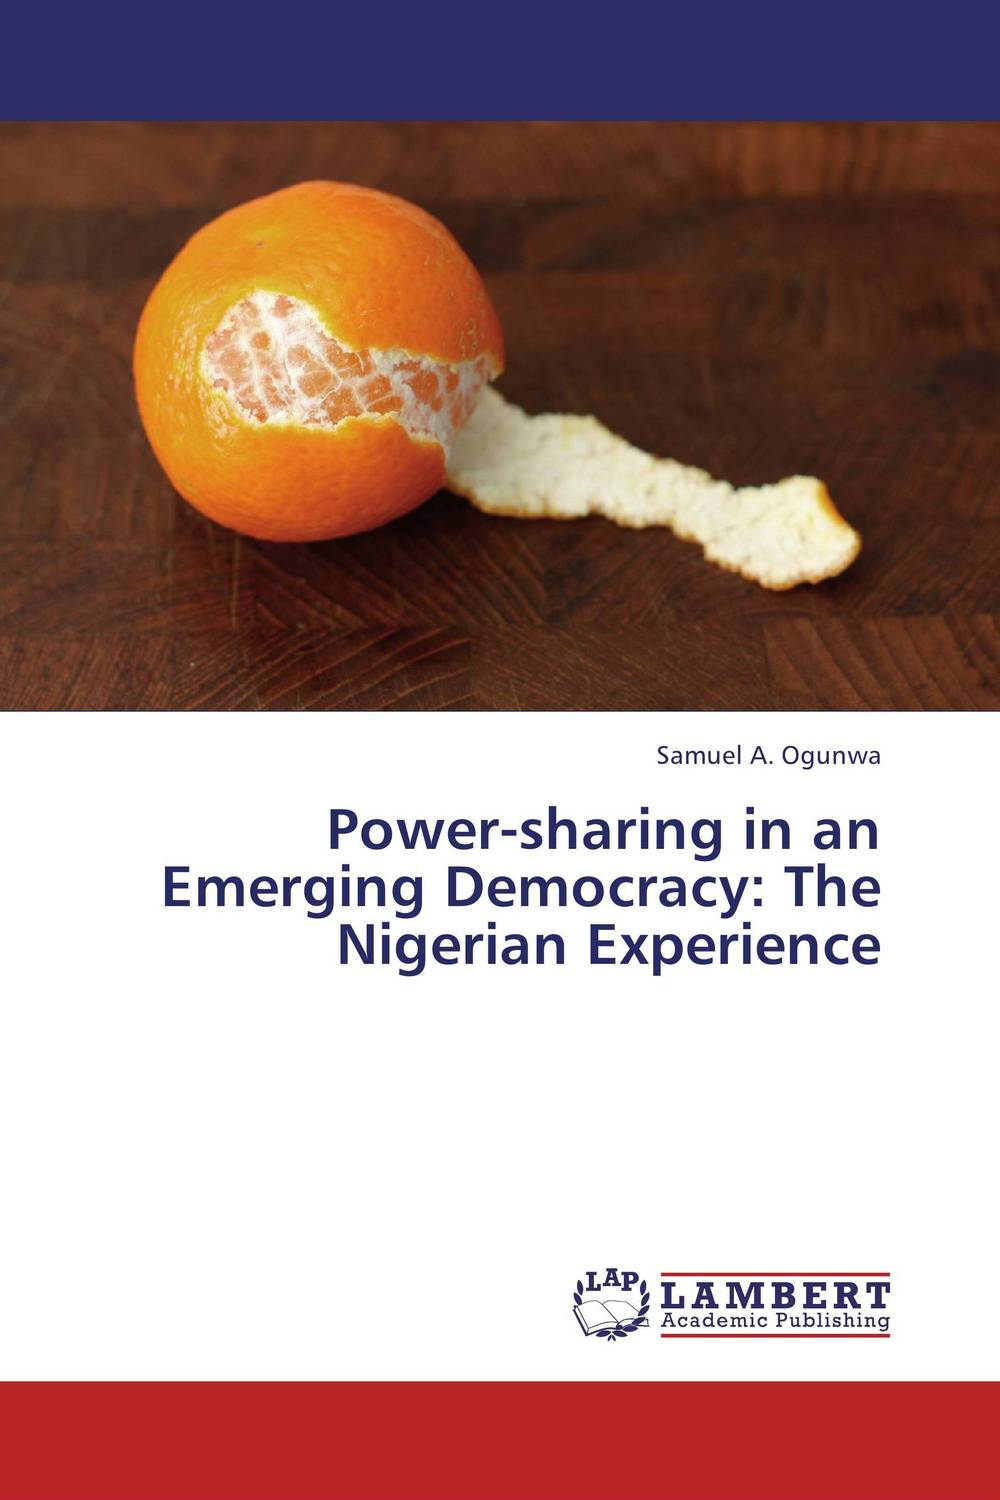 Power-sharing in an Emerging Democracy: The Nigerian Experience strict democracy burning the bridges in politics